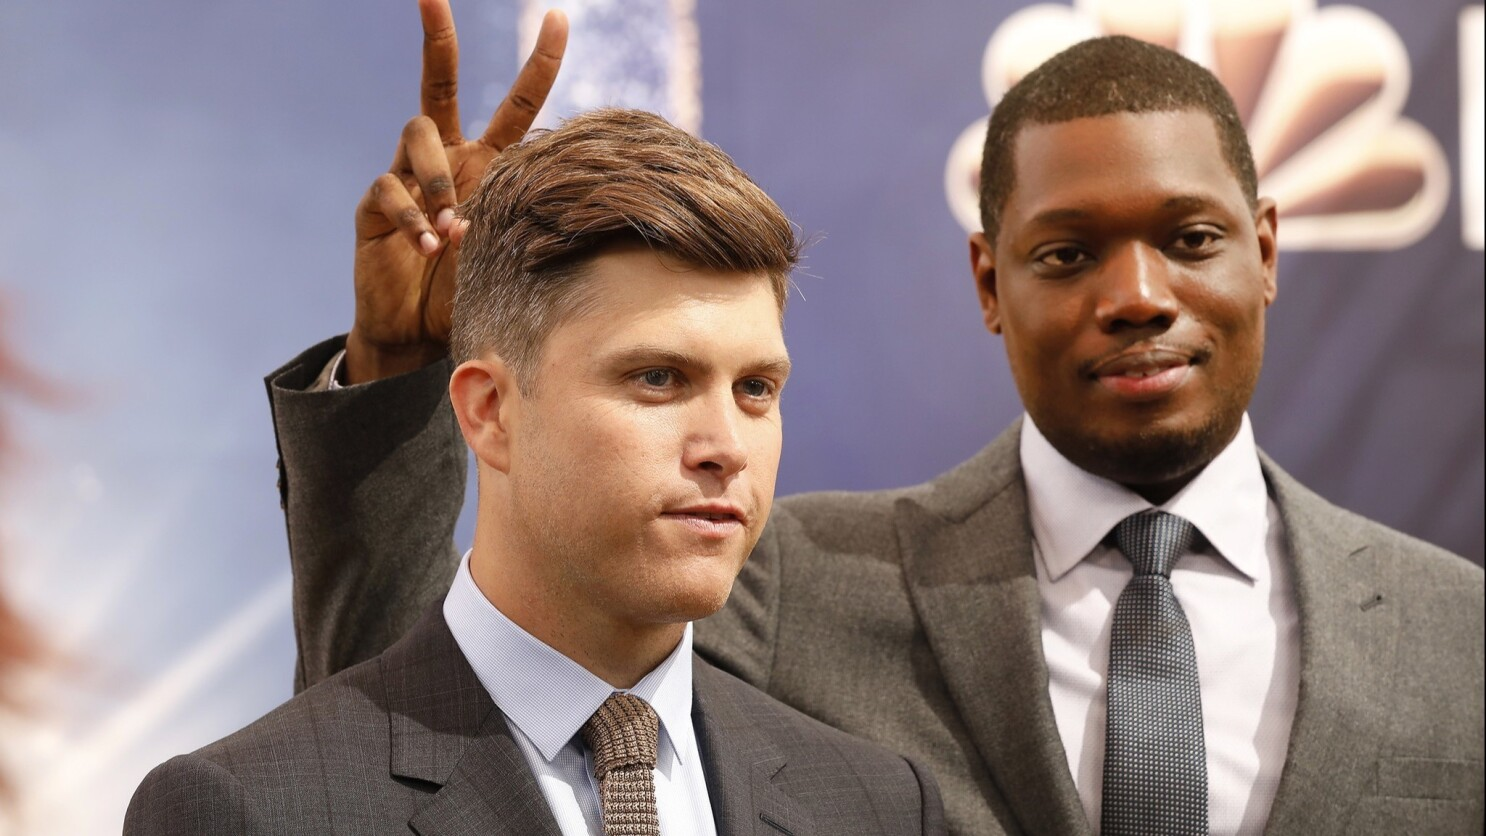 Hosting The First Emmys Of The Metoo Era Colin Jost And Michael Che Have A Lot To Prove Los Angeles Times